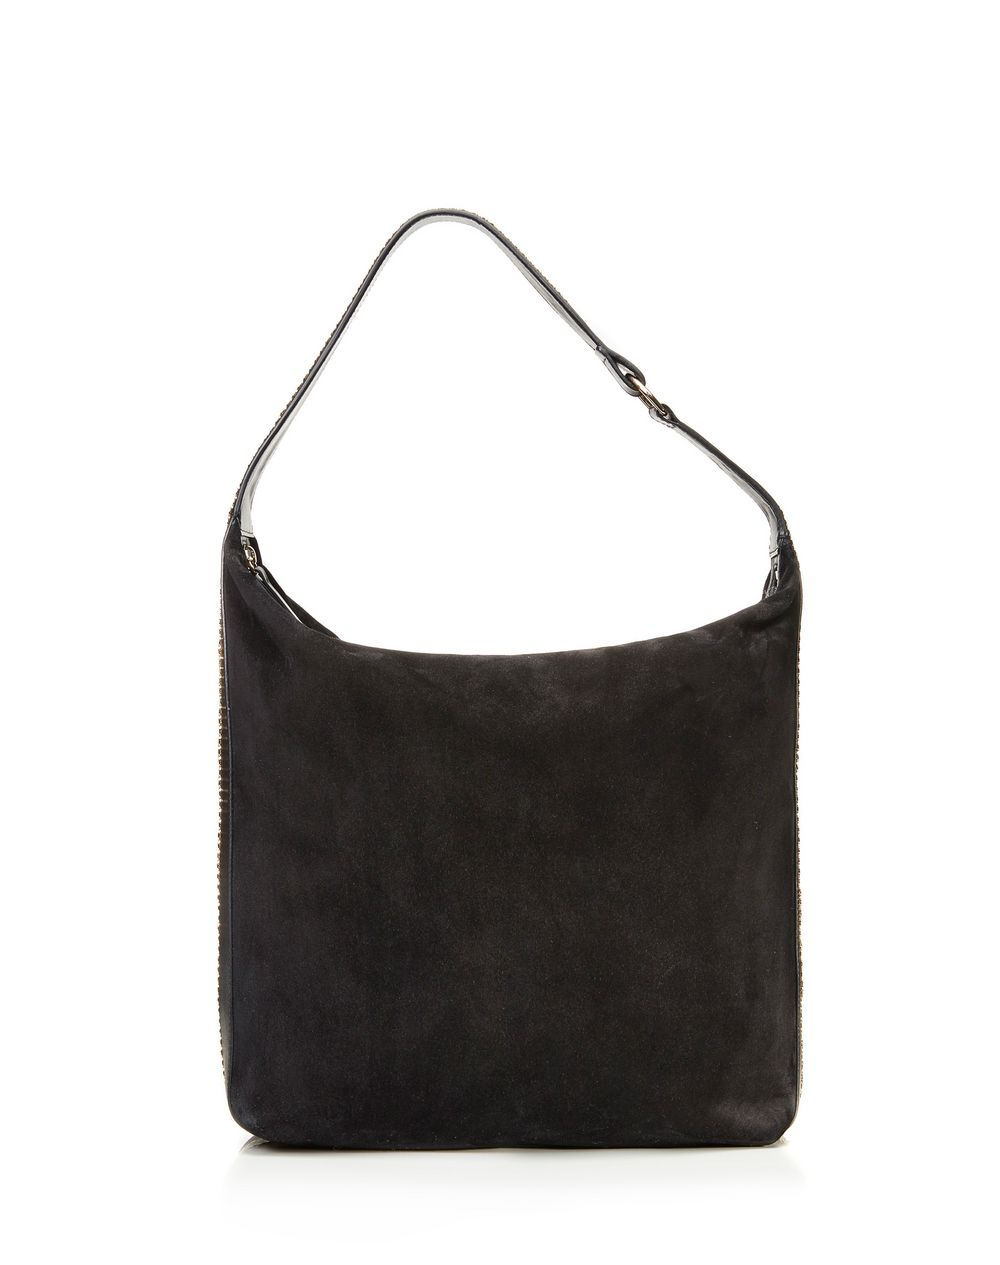 "MEDIUM ""CHAÎNE"" HOBO BAG - Lanvin"